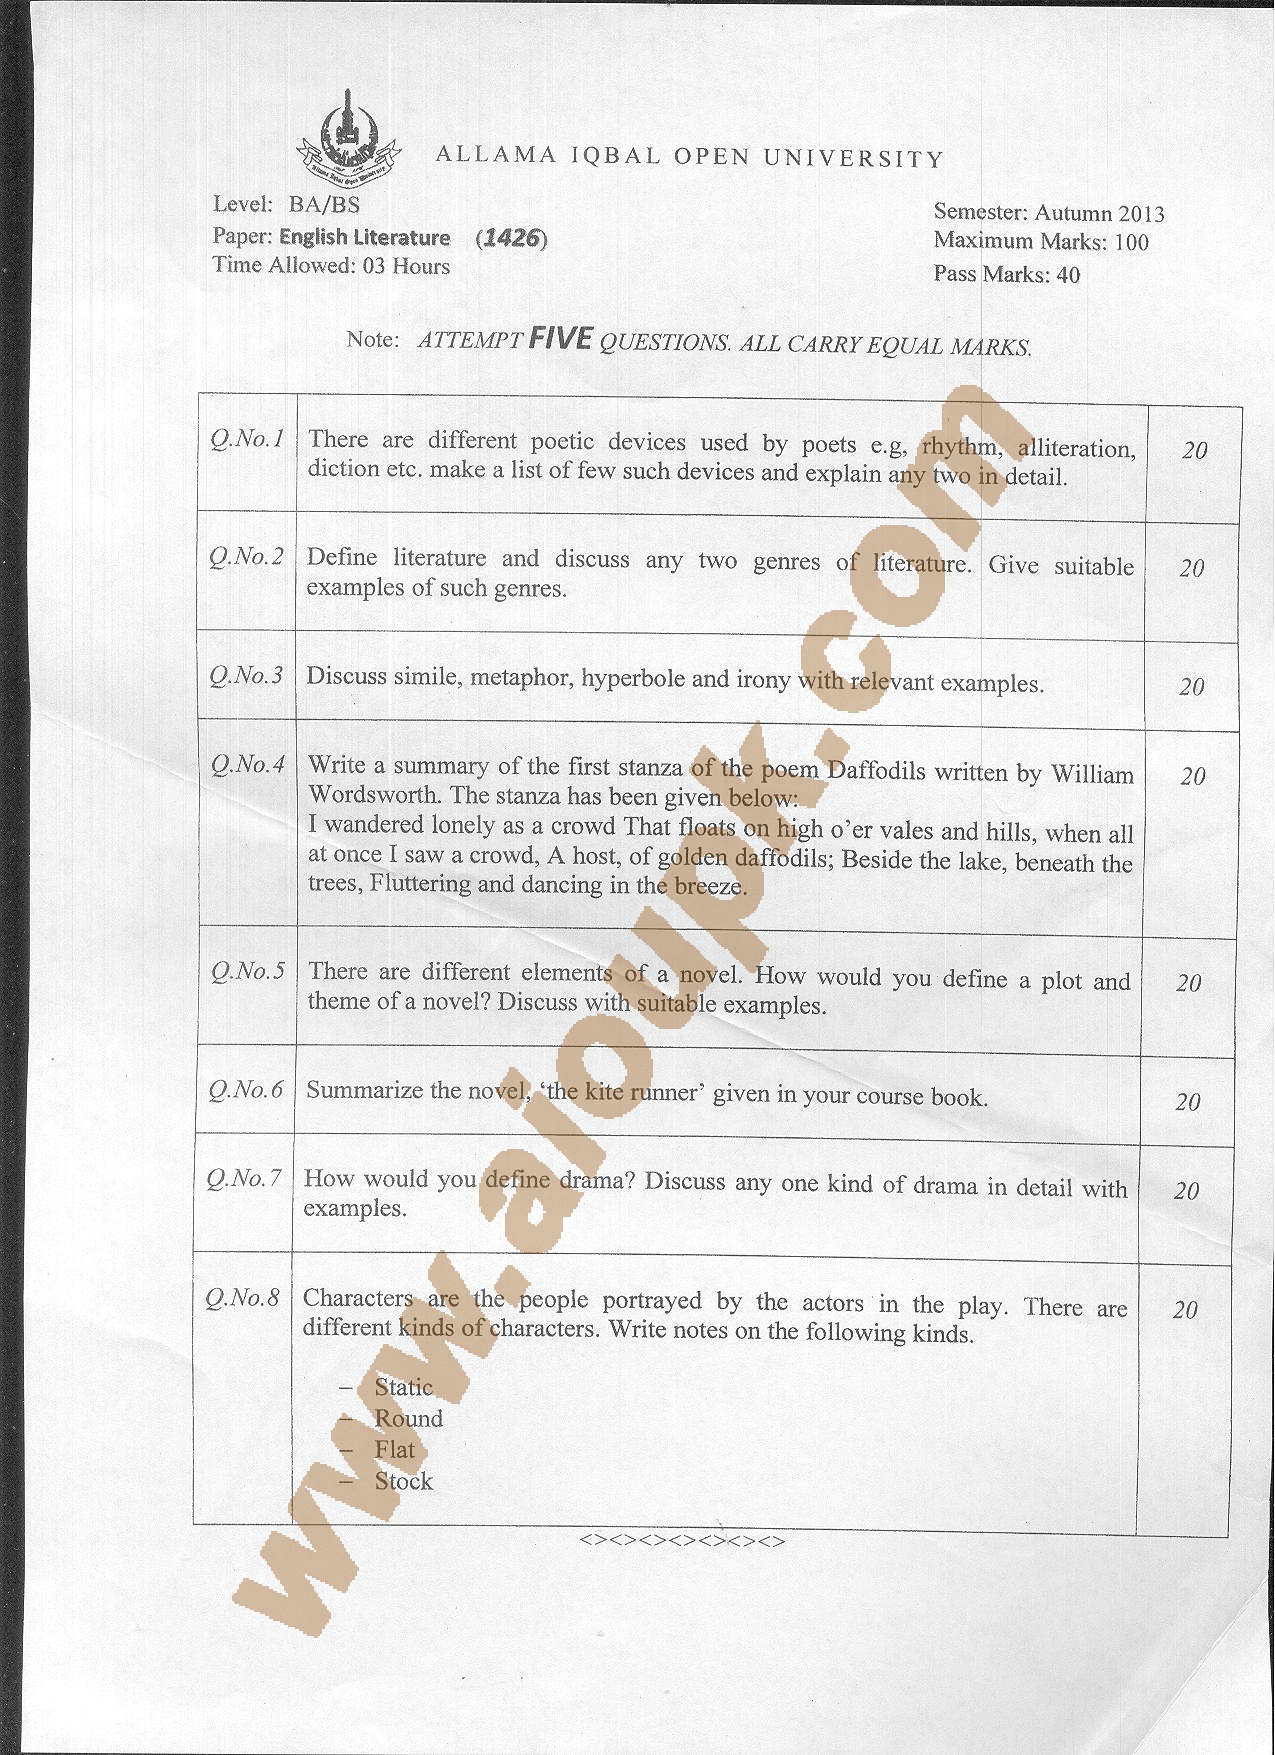 aiou assignment question paper spring 2012 Reporting code : 431 program : bachelors ba, old paper of aiou, spring 2012 aiou assignments question papers spring 2015.